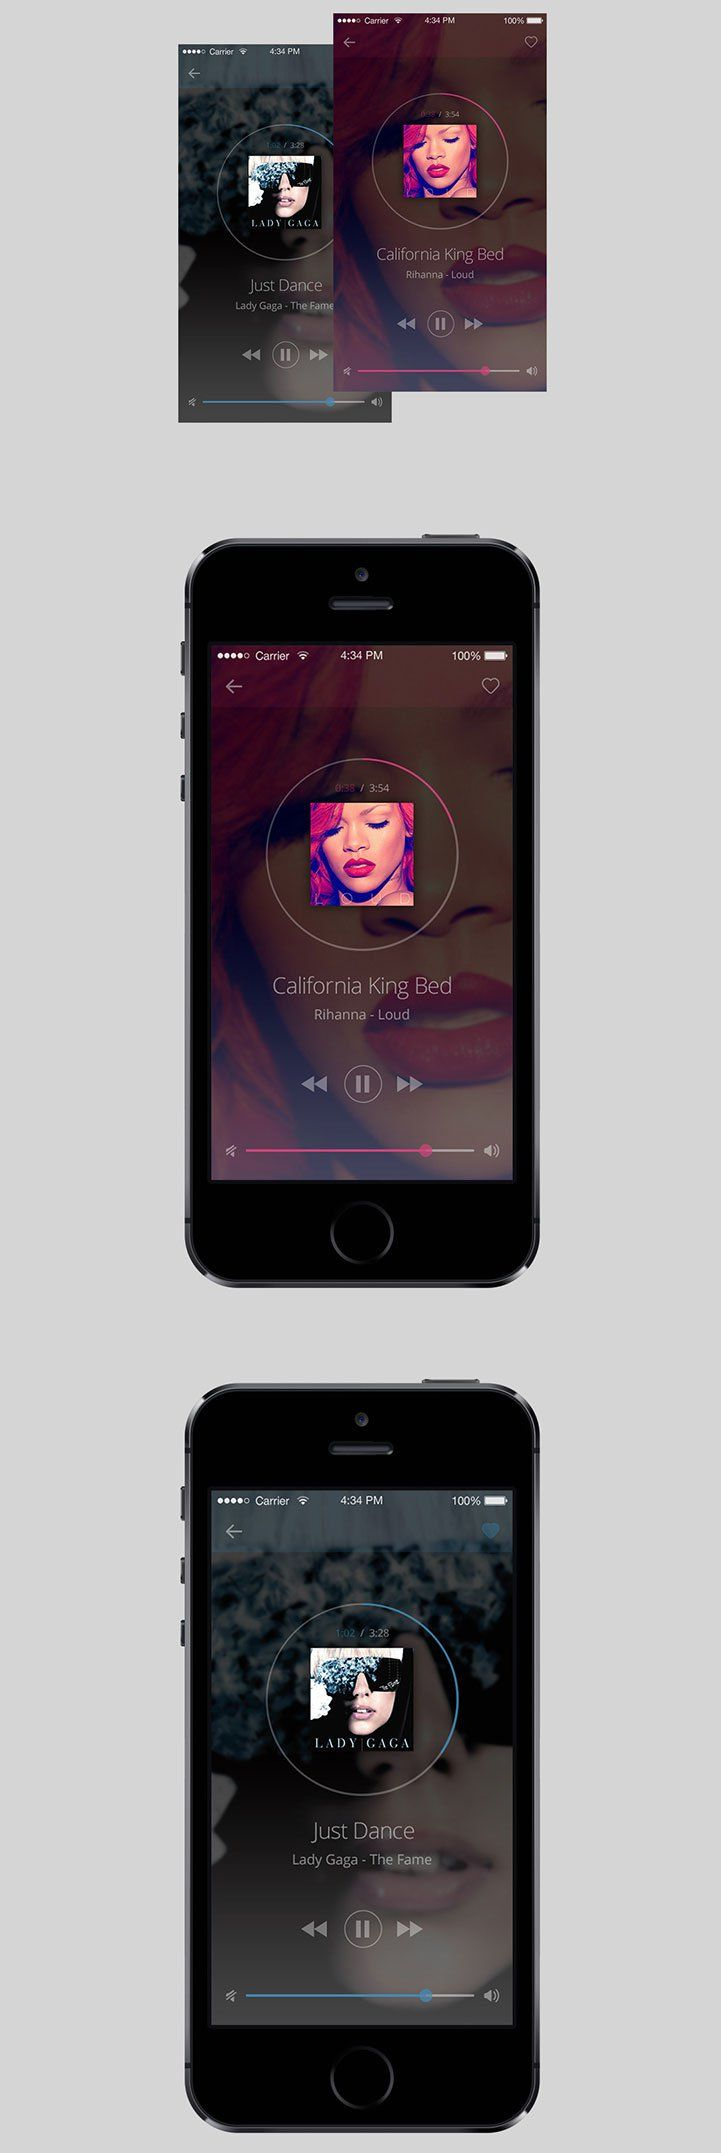 UI for a music player app